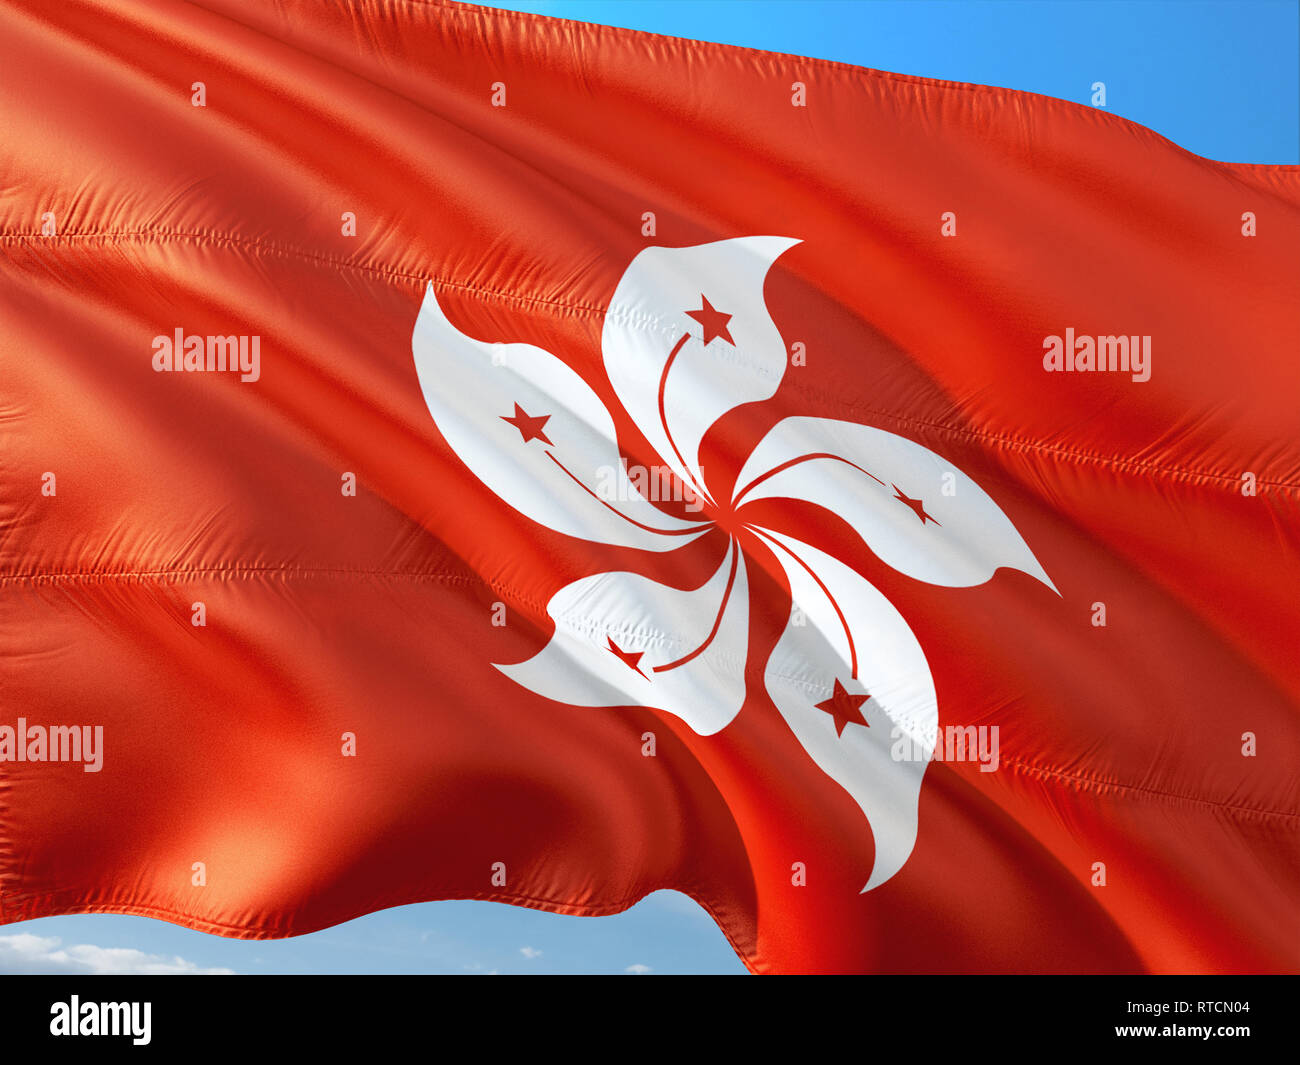 Flag of Honk Kong waving in the wind against deep blue sky. High quality fabric. - Stock Image